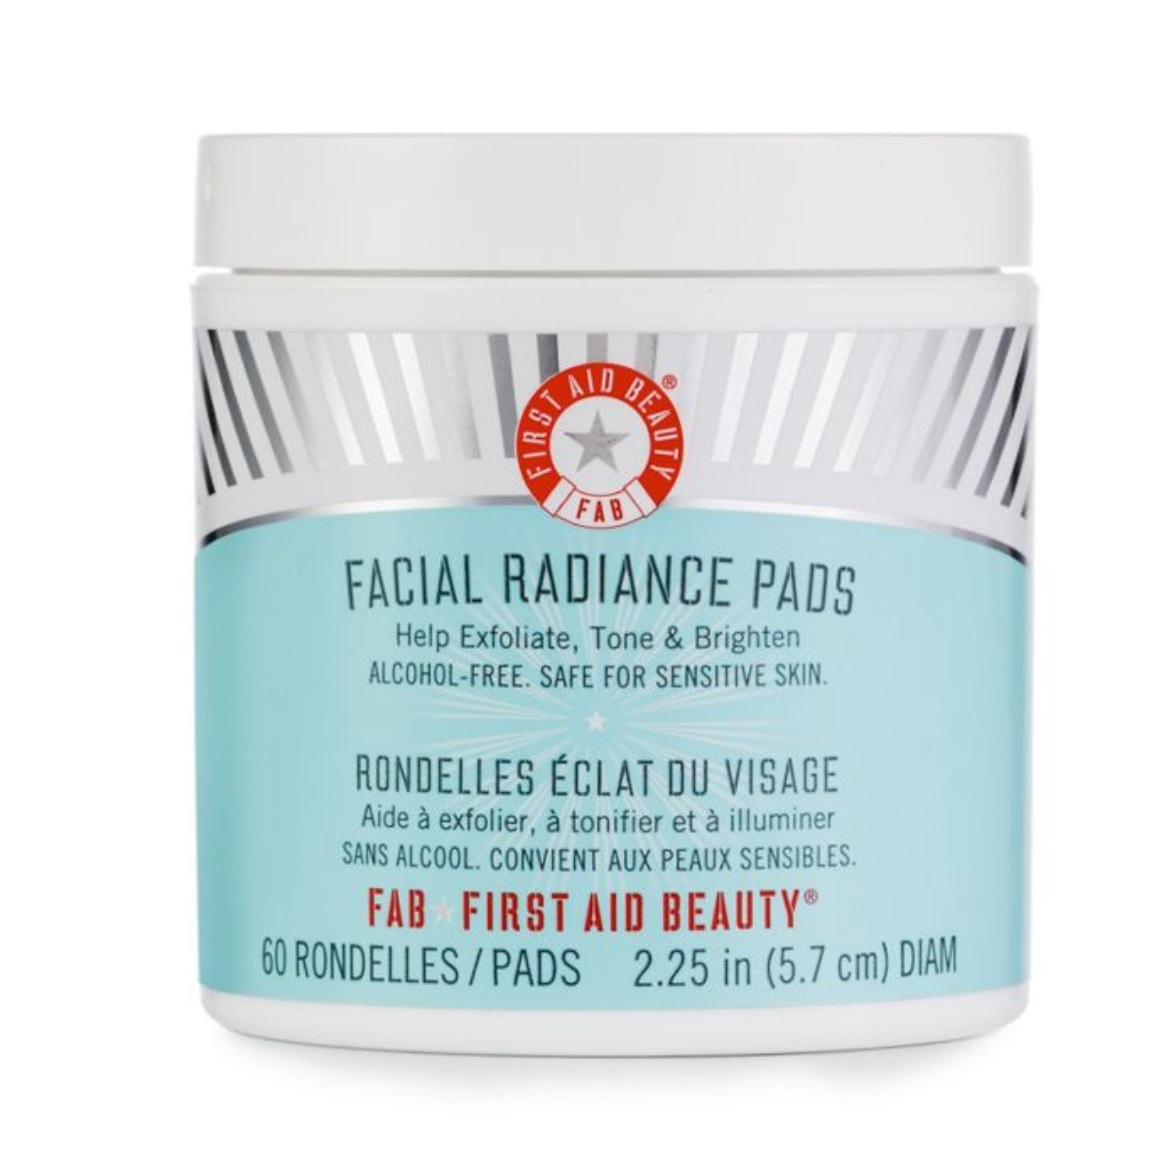 - I've been using these for about 2 weeks and they are great! Us mamas need a little radiance in our lives amiright? Treat yo self!Find them here.